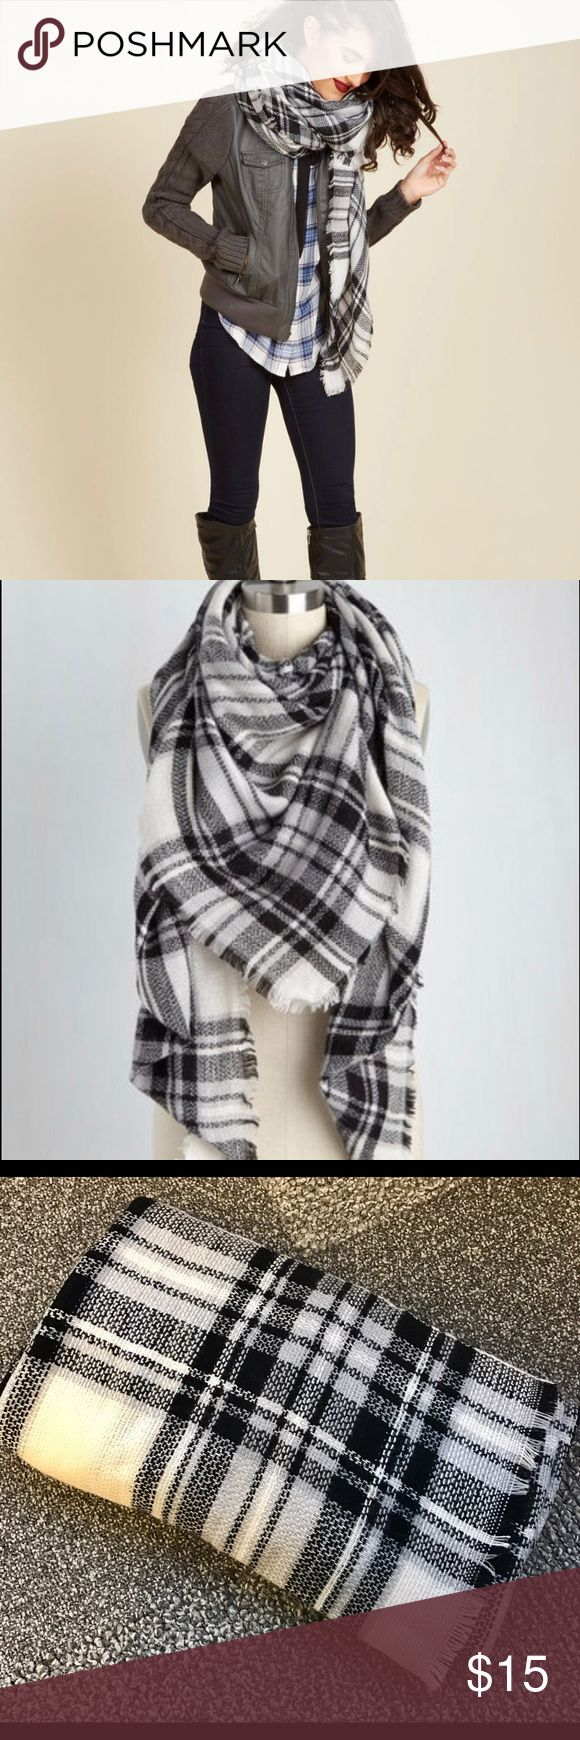 """Modcloth Blanket Scarf Black white and grey blanket scarf 55"""" x 55"""" - brand new - very soft - can be worn multiple ways! ModCloth Accessories Scarves & Wraps"""